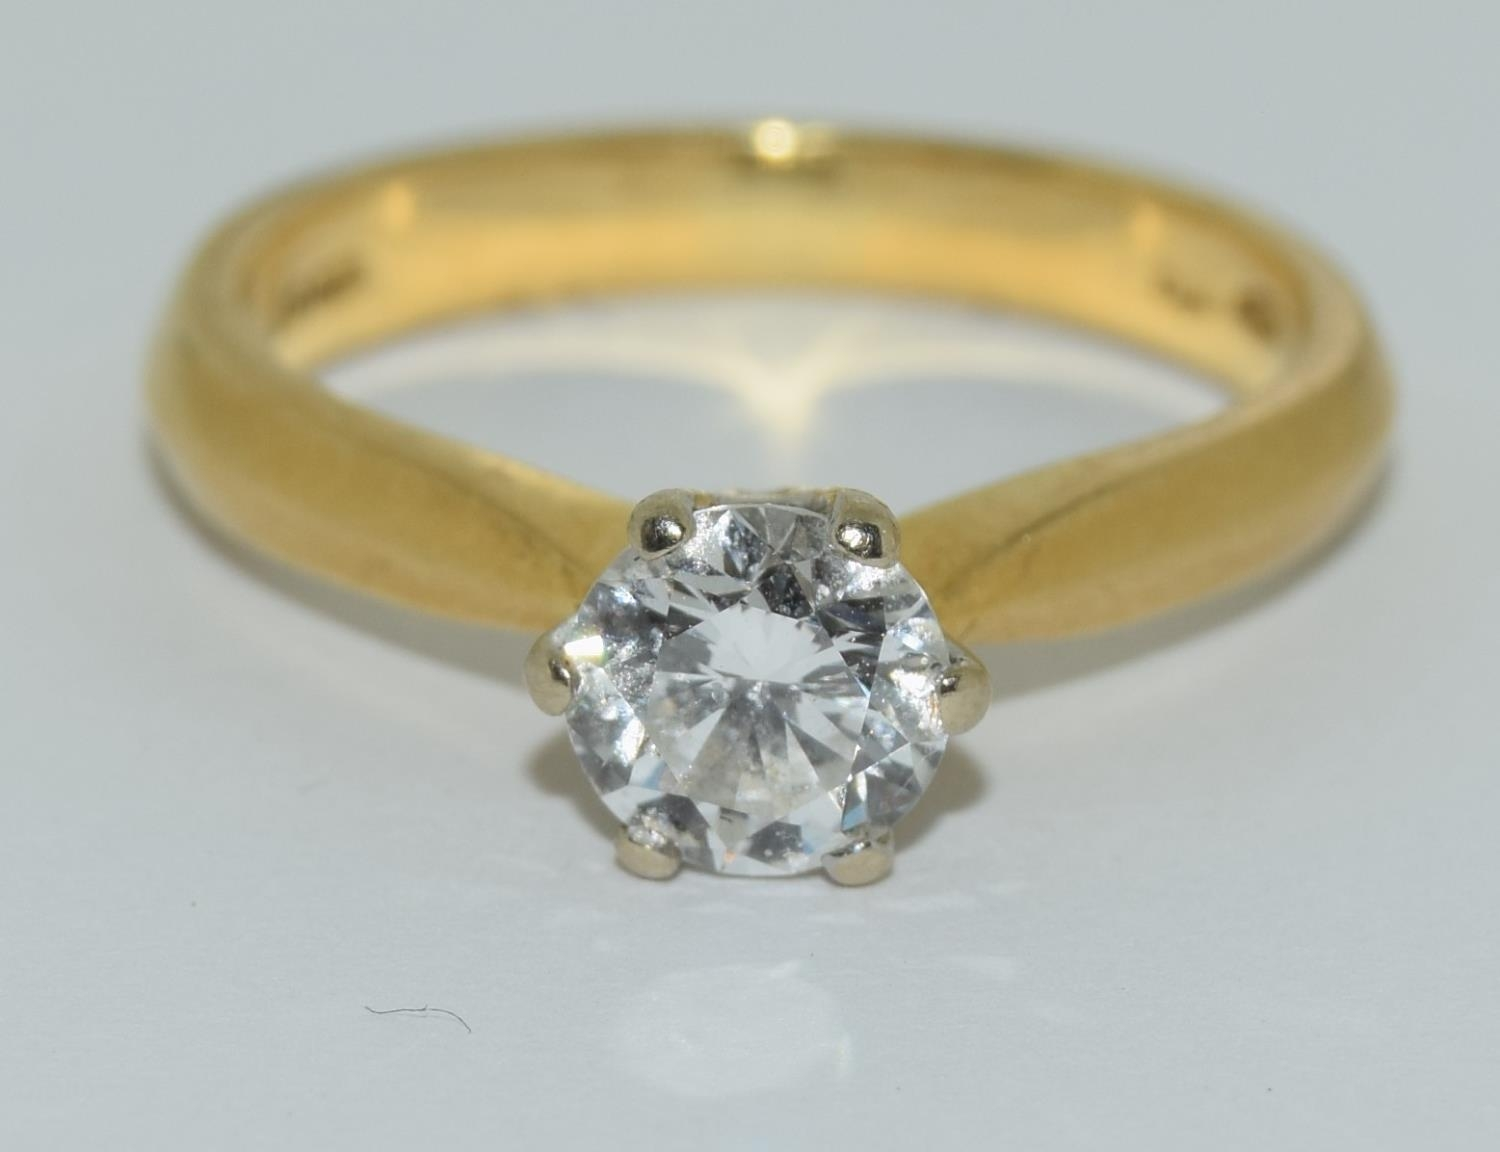 An 18ct white gold ladies diamond solitaire ring 0.75ct Approx., Size M. - Image 6 of 6